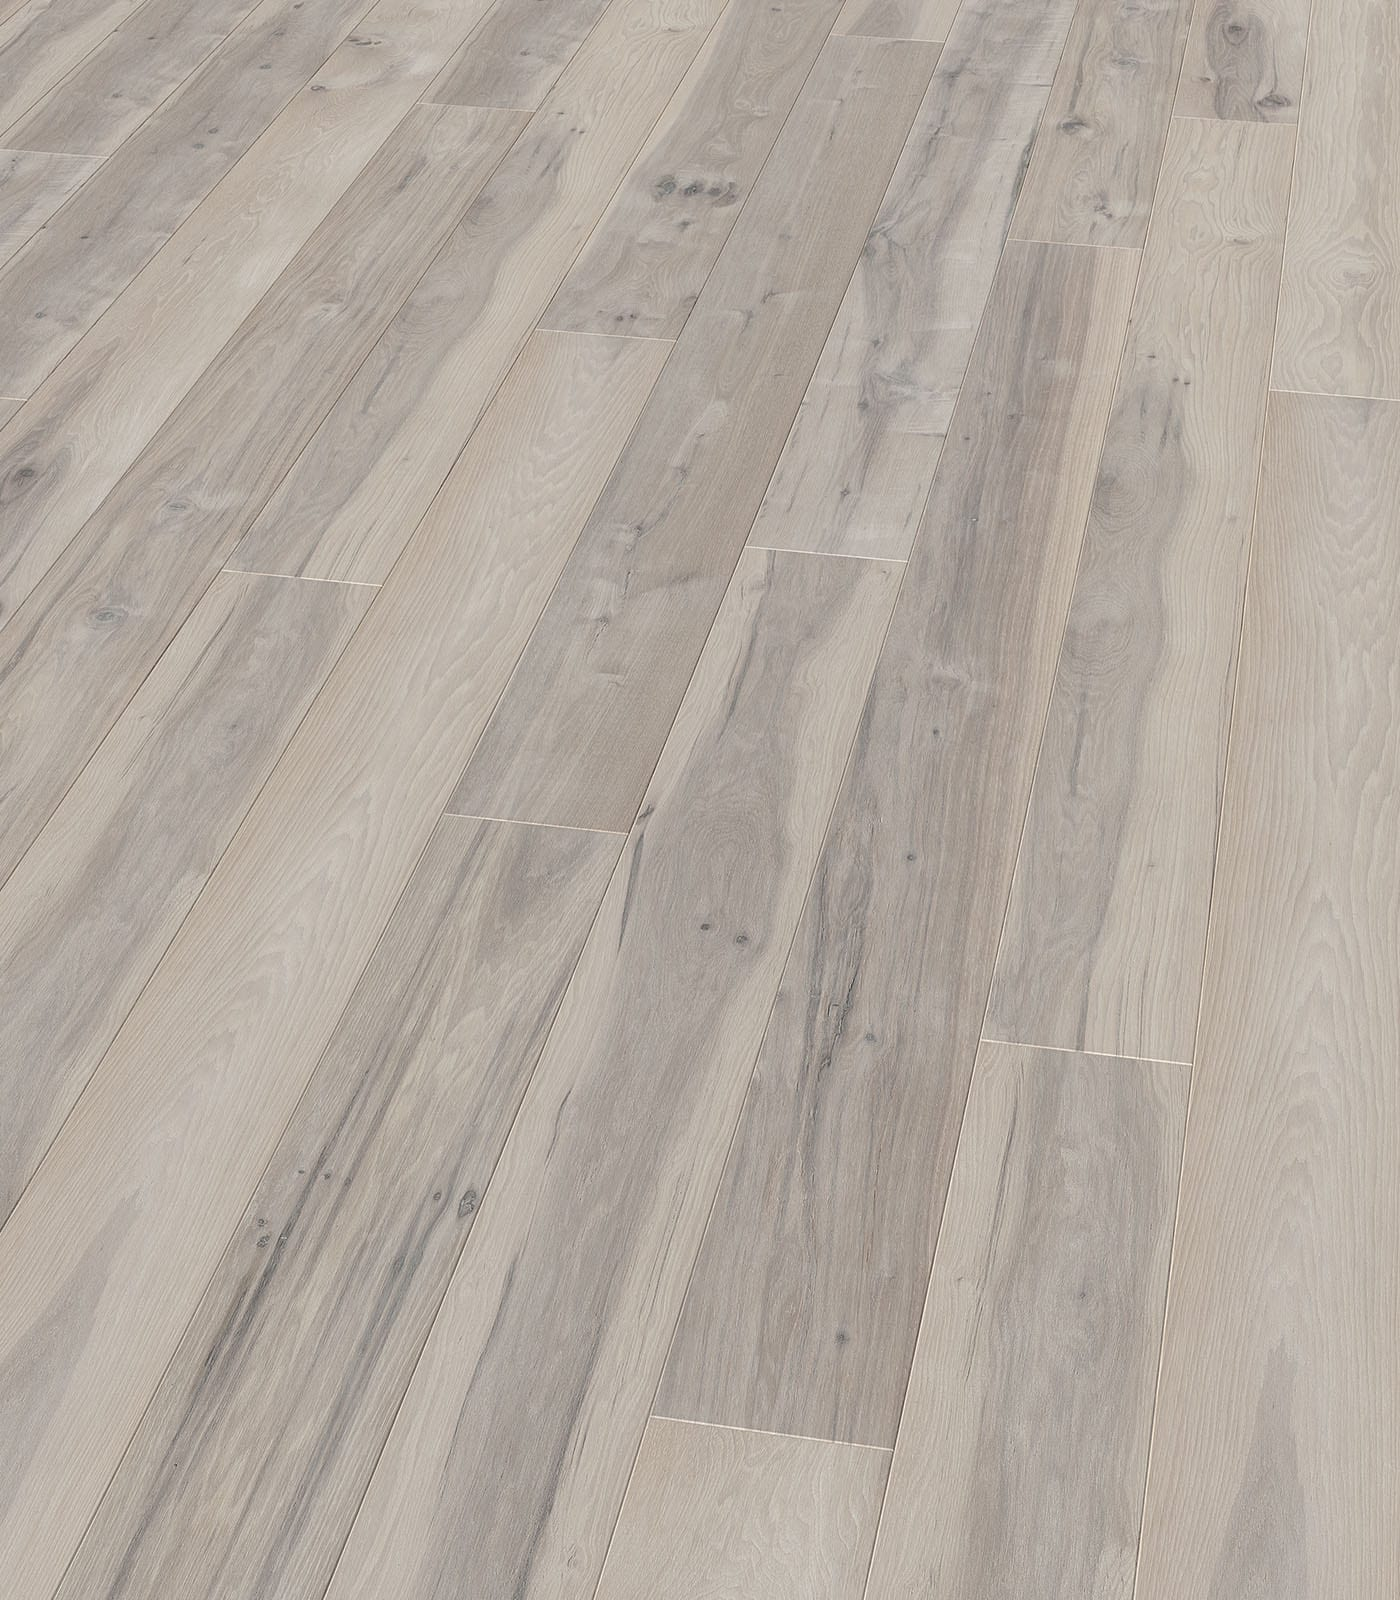 Austin-Pecan floors-After Oak Collection - angle